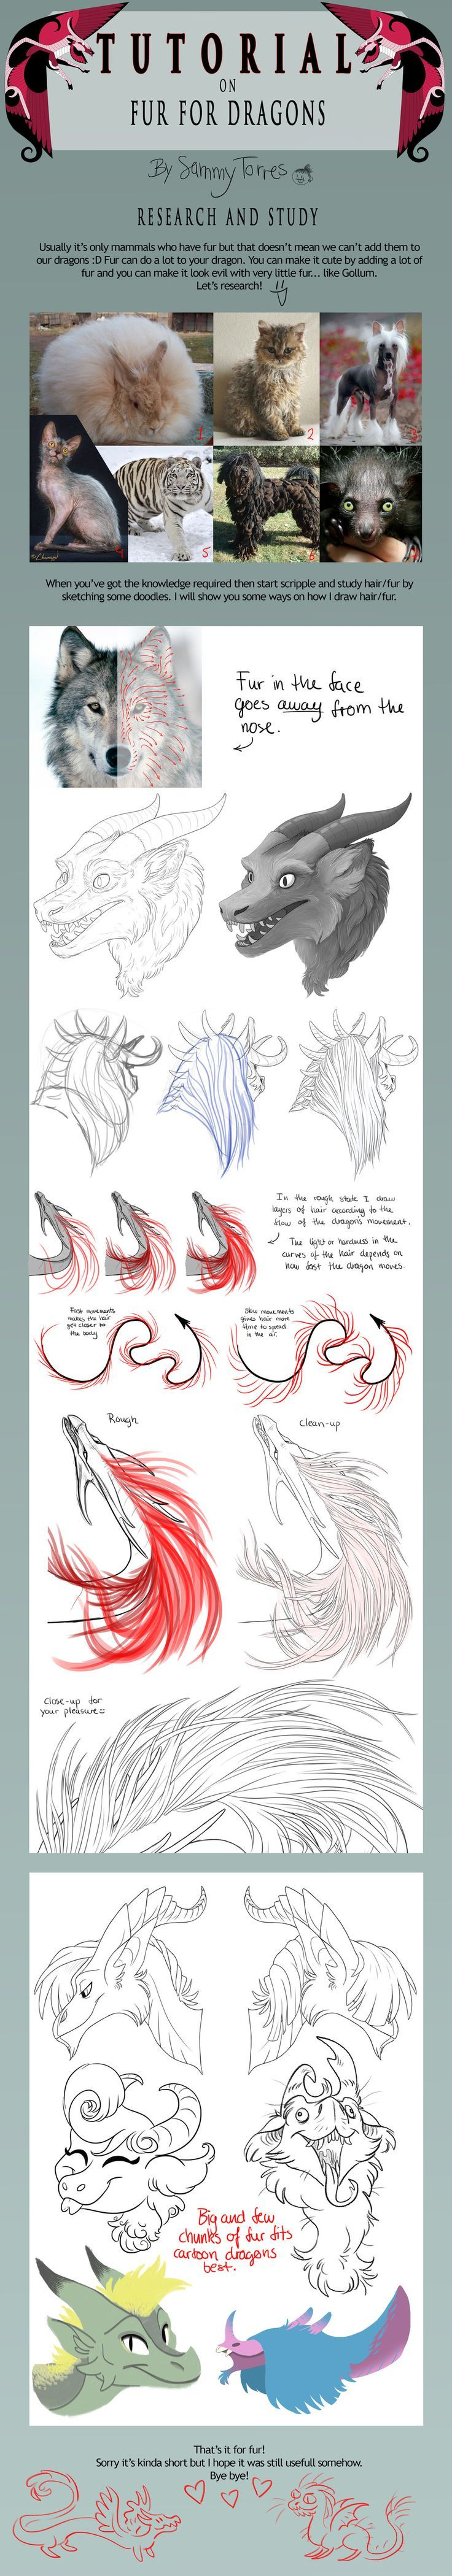 TUTORIAL: Fur for Dragons by SammyTorres on DeviantArt